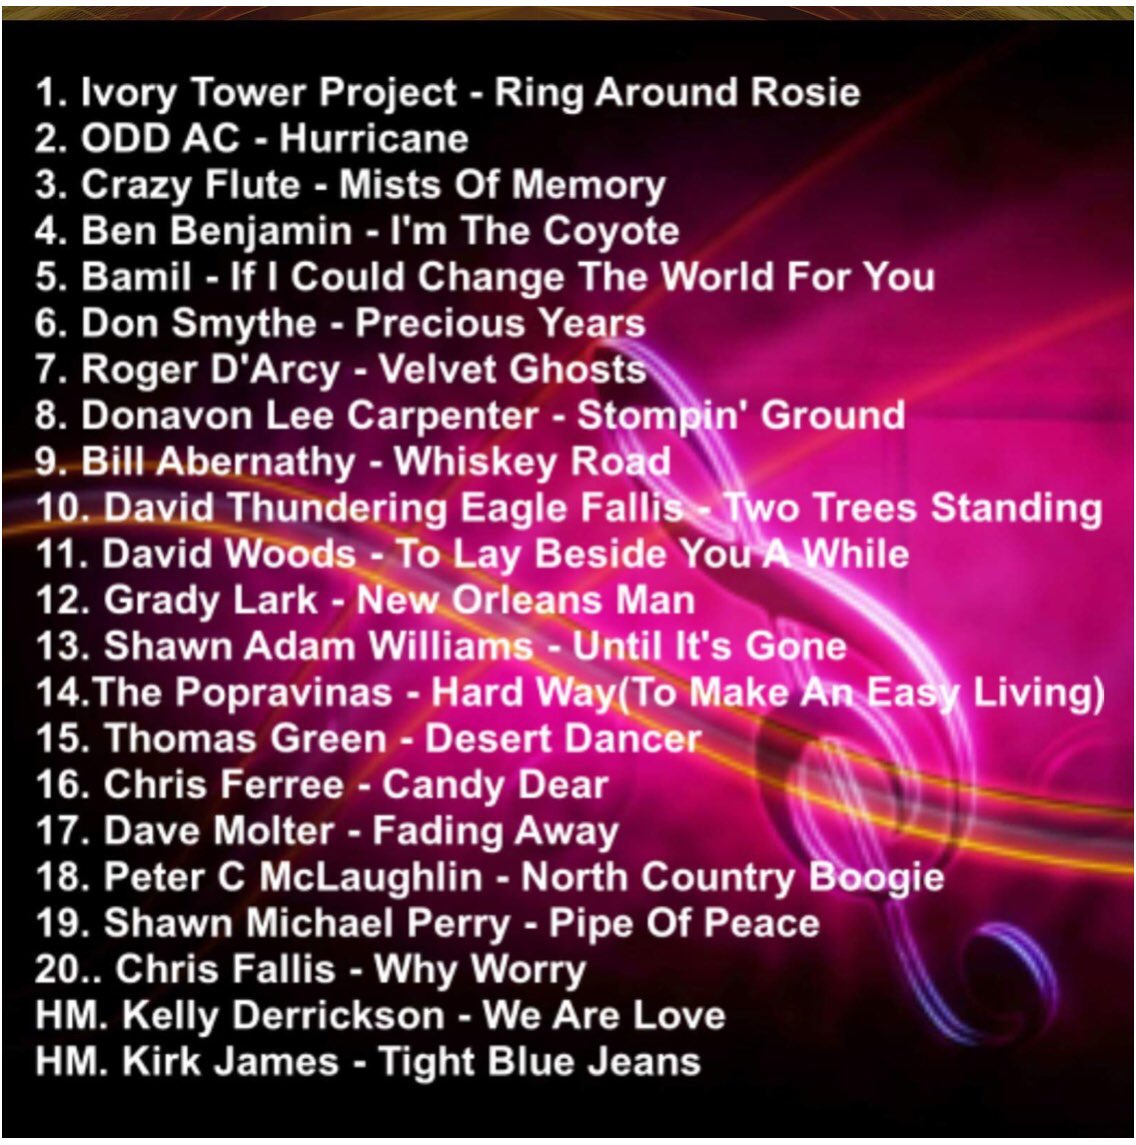 Native Family Radio USA - Velvet Ghosts by Roger D'Arcy - 5 weeks in the Top 20 #folkmusic #singersongwriter #countrymusic<br>http://pic.twitter.com/gj1zXhZCsD